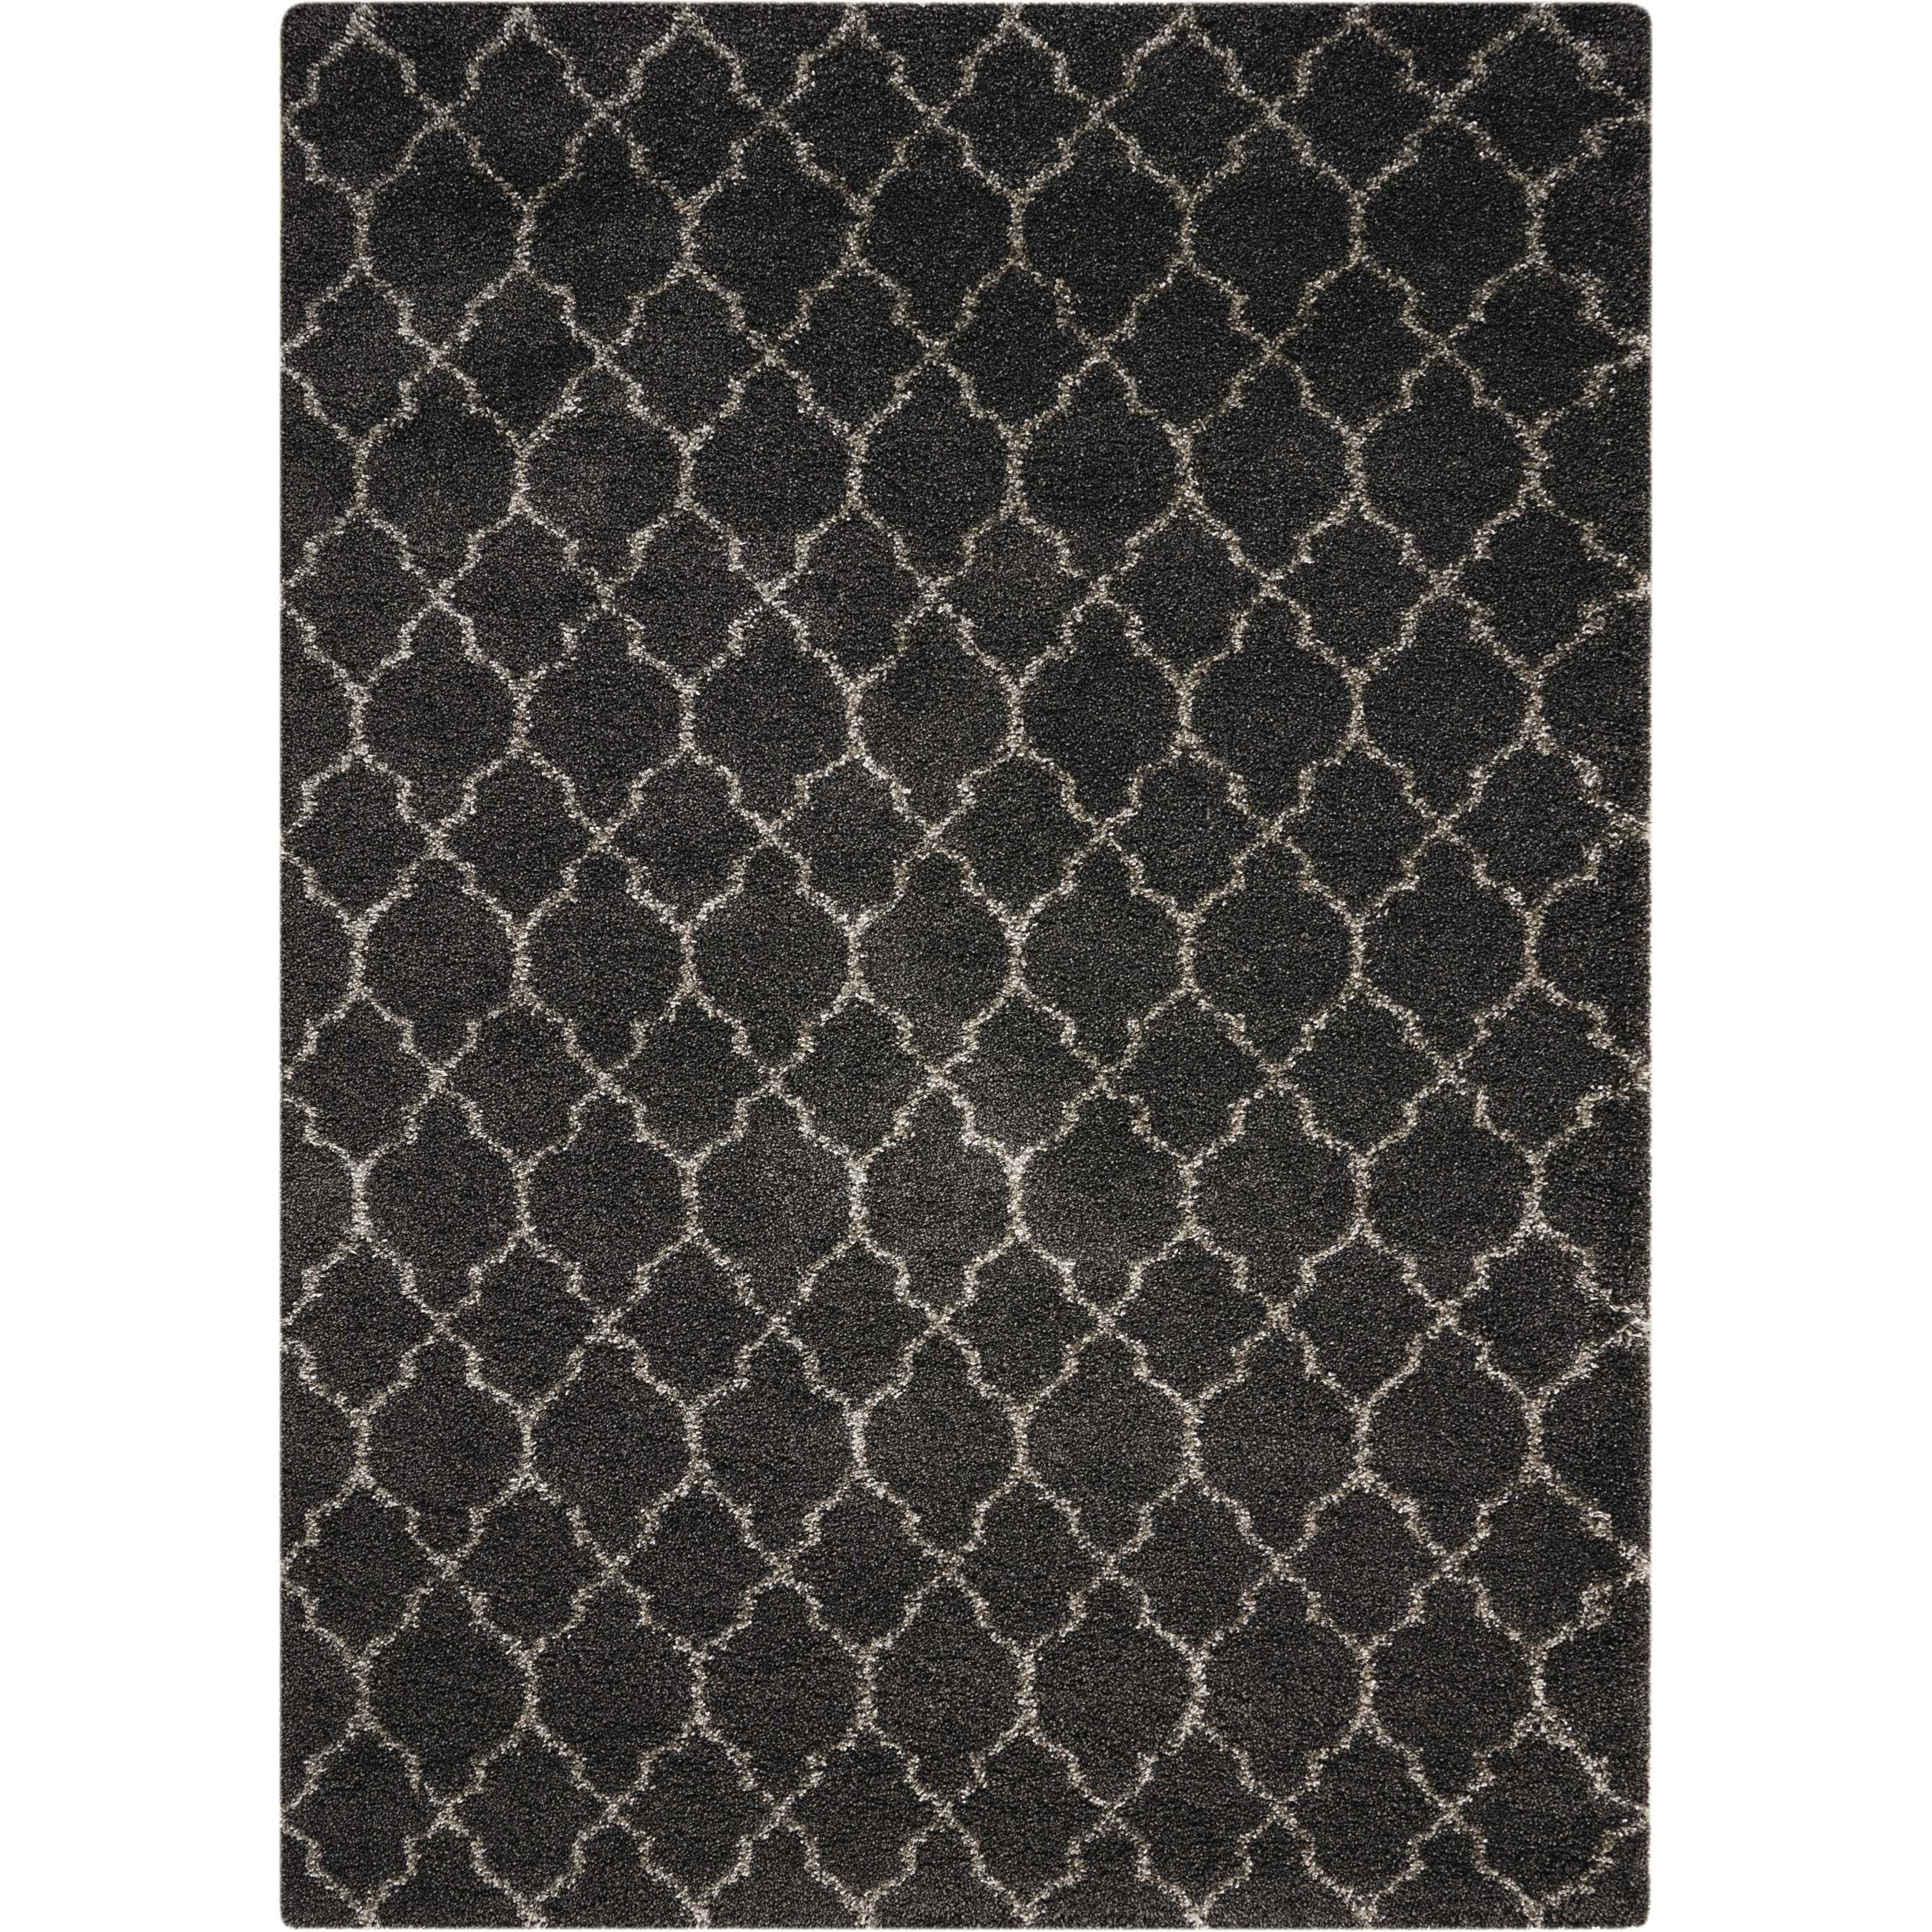 "Amore 7'10"" x 10'10"" Charcoal Rectangle Rug by Nourison at Home Collections Furniture"